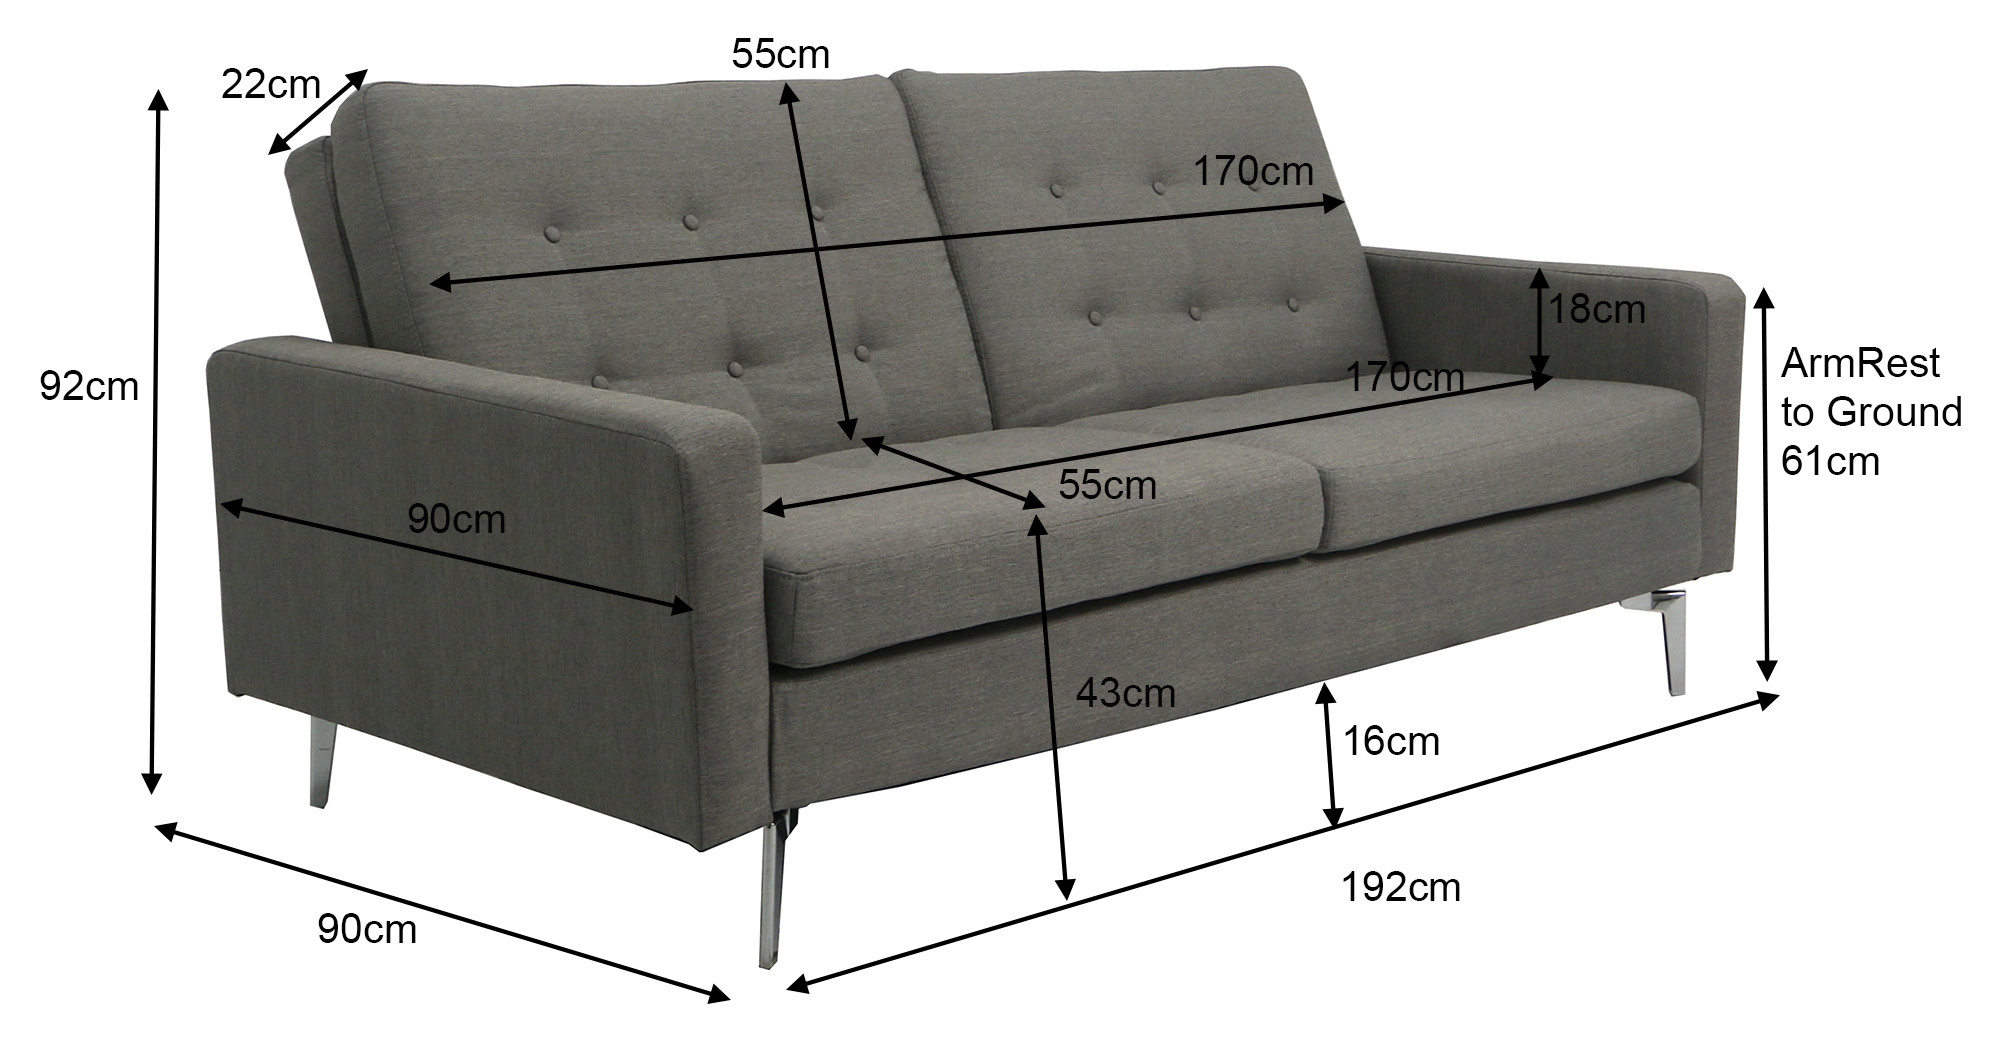 3 Seater Sofa Dimensions Which Ikea 3 Seater Sofa Is This